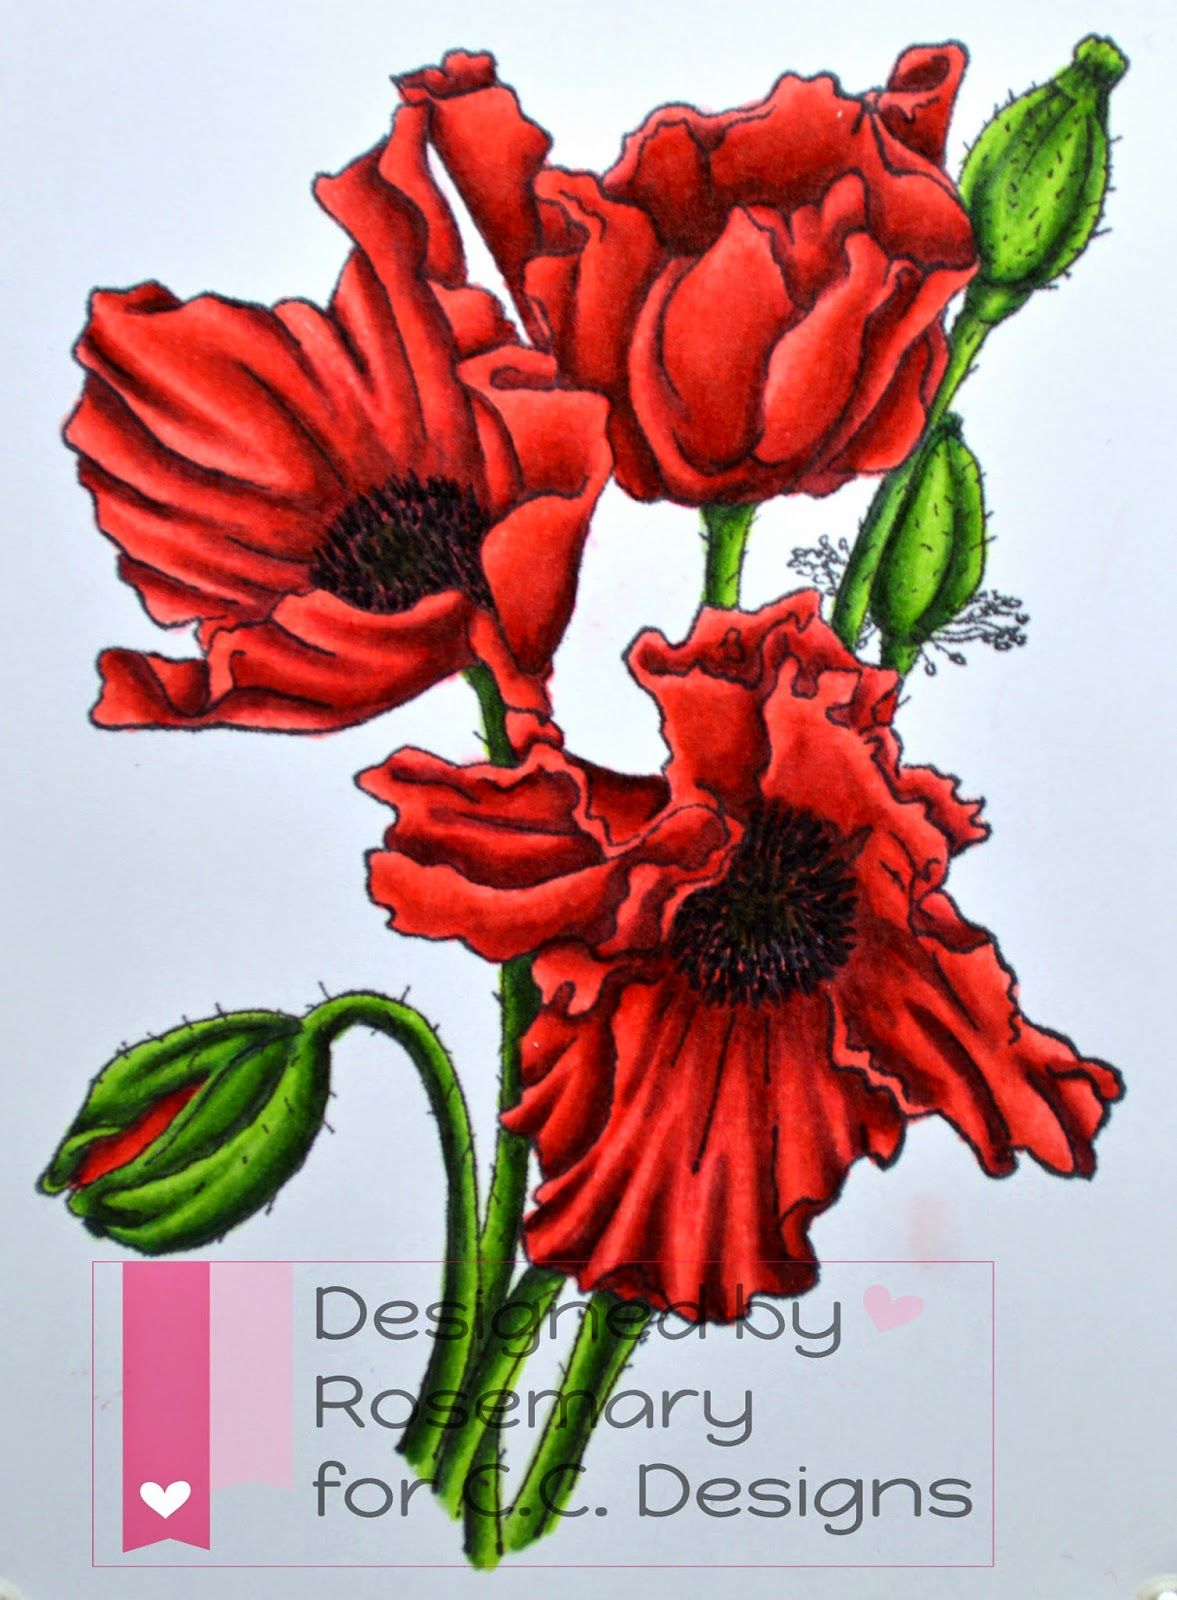 Rosemary's Creations - Red: R22, R24, R27, R29, R59 Green: G21, G28, YG23, YG67, C7 Inside of poppies: C7, Black